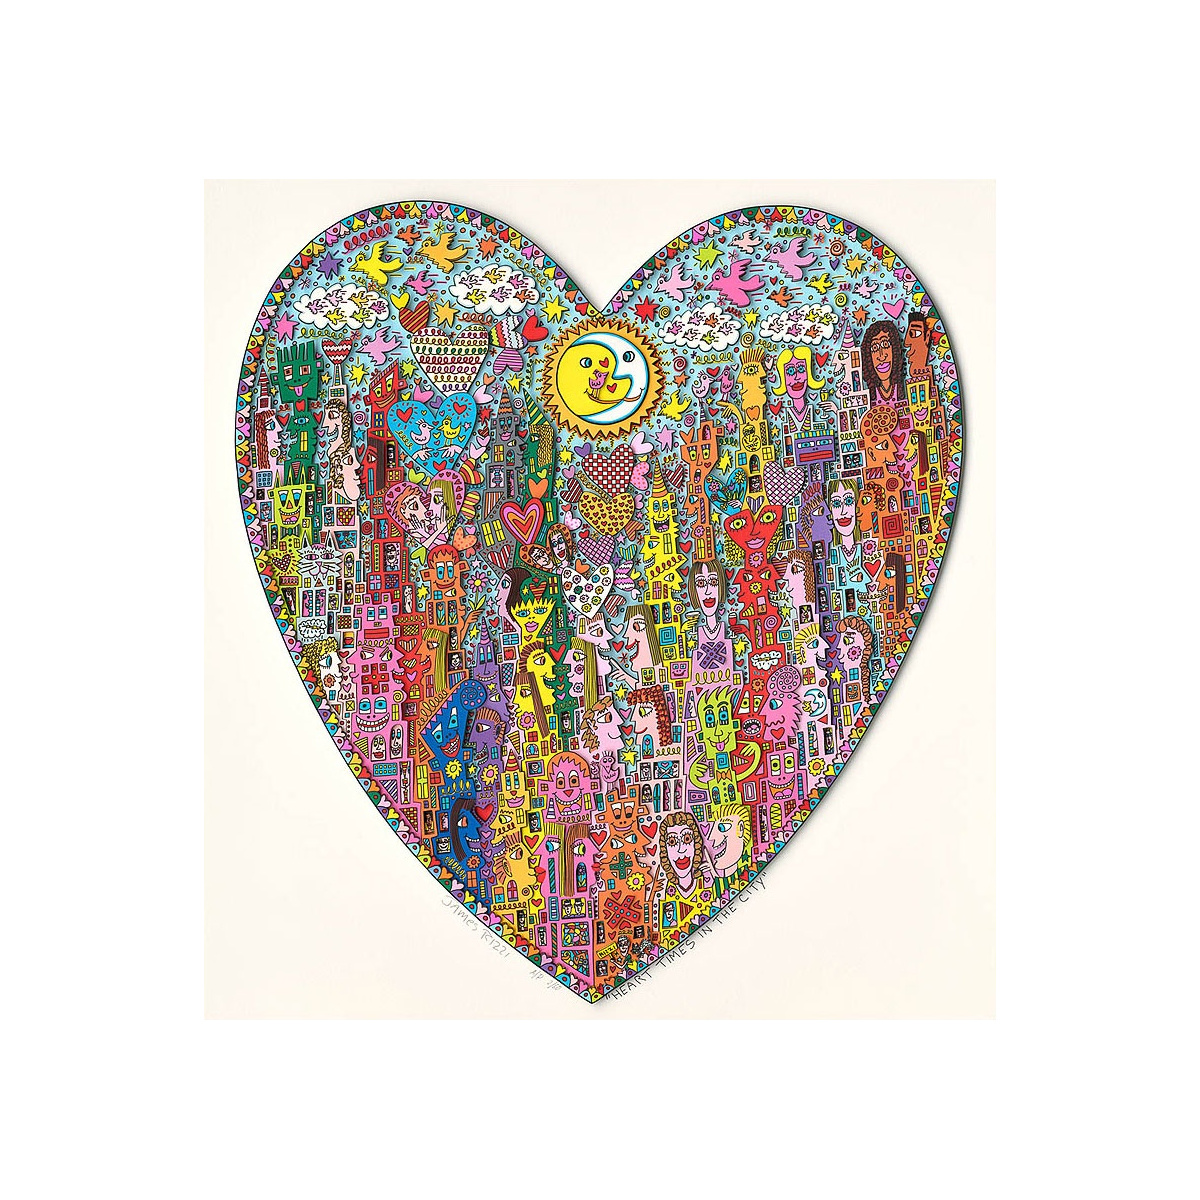 Heart times in the city von James Rizzi